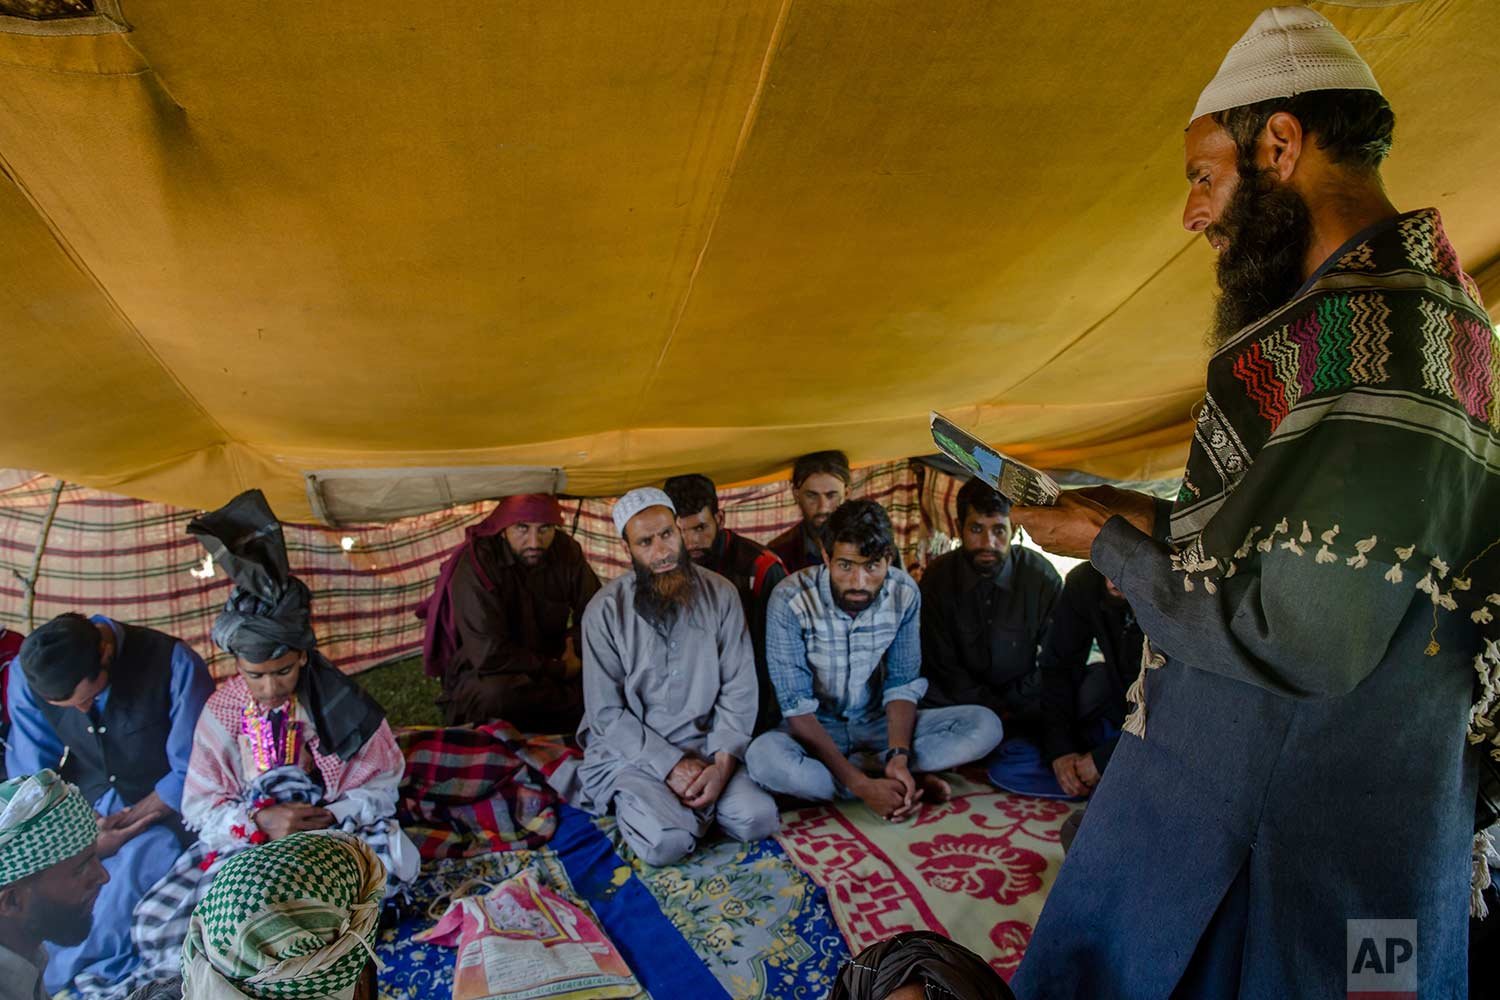 In this May 11, 2018, photo, Kashmiri Bakarwal nomads listen to a sermon delivered by a cleric during a marriage ceremony at a camp in the outskirts of Srinagar, Indian controlled Kashmir. (AP Photo/Dar Yasin)